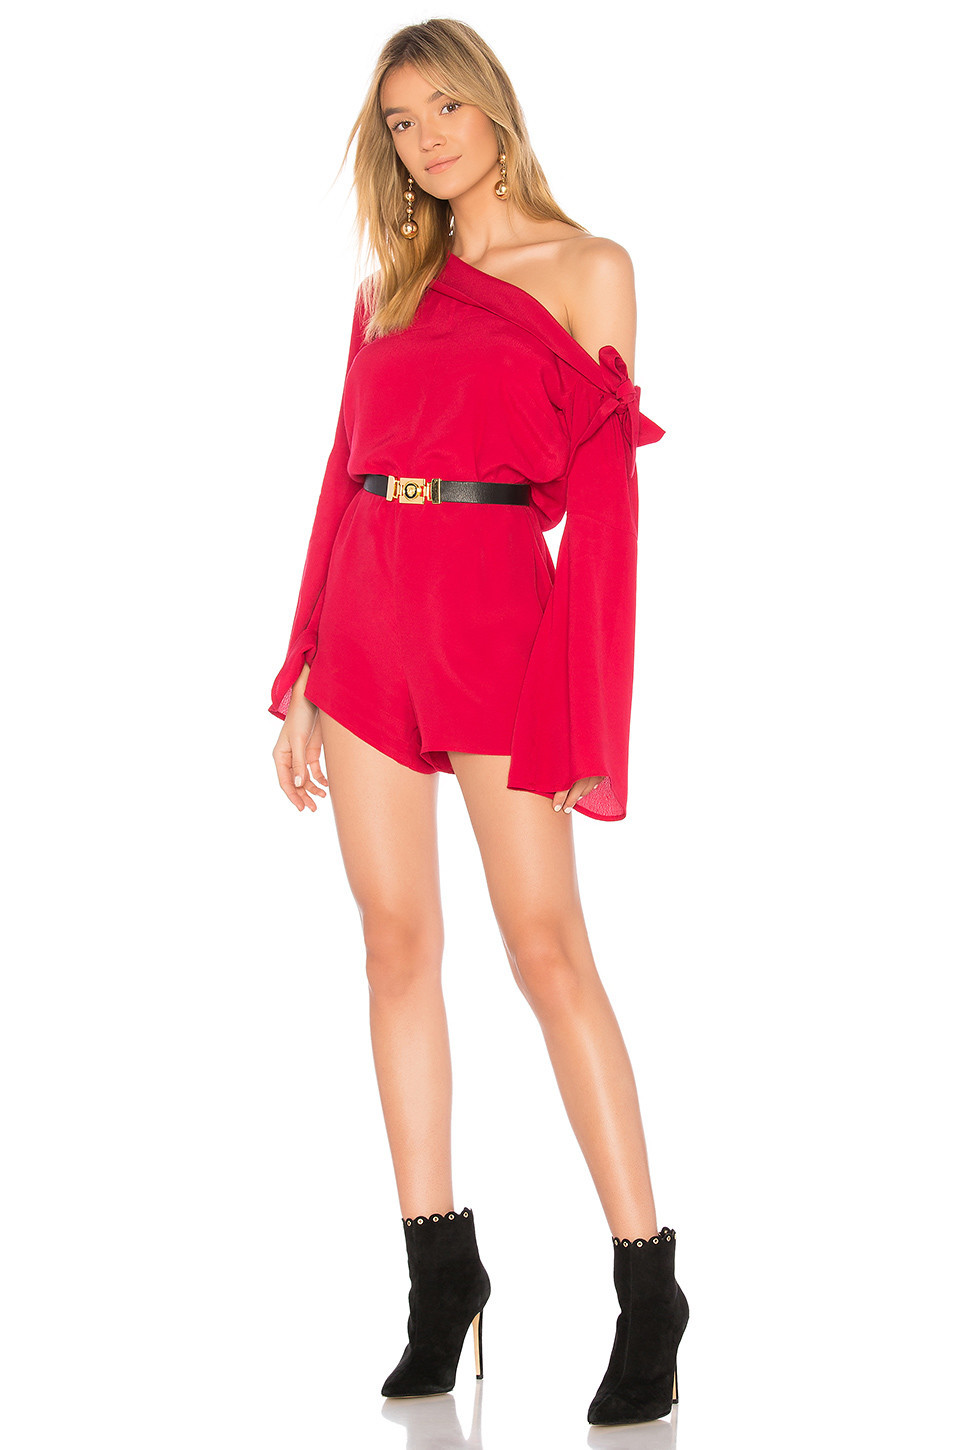 4309ddbf0e Alice McCall Red Locomotion Playsuit - Wheretoget